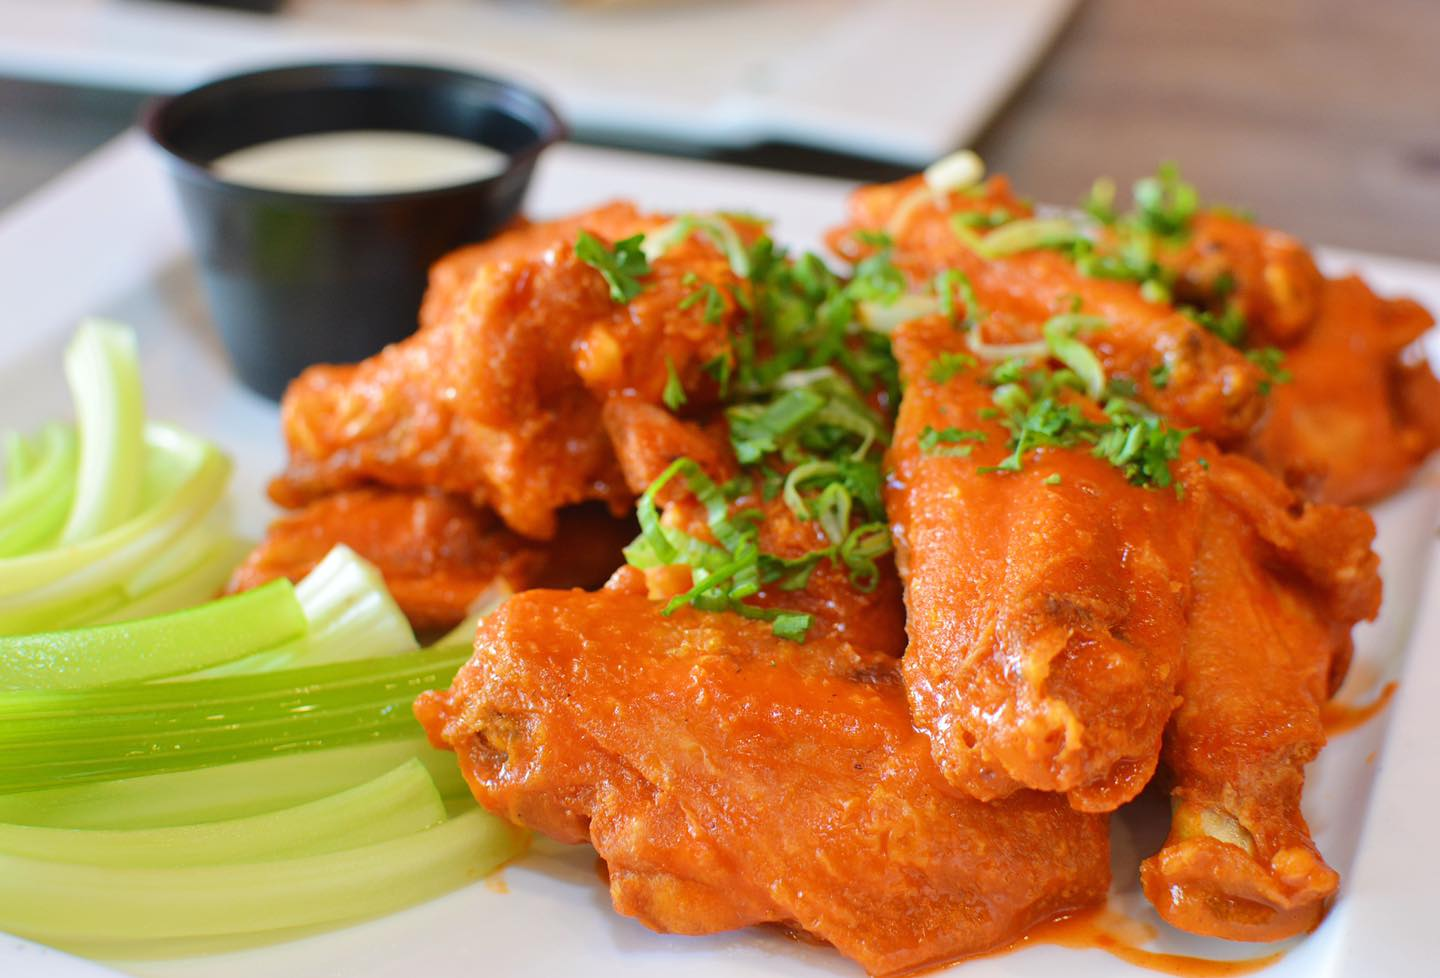 buffalo chicken wings with celery and ranch on the side